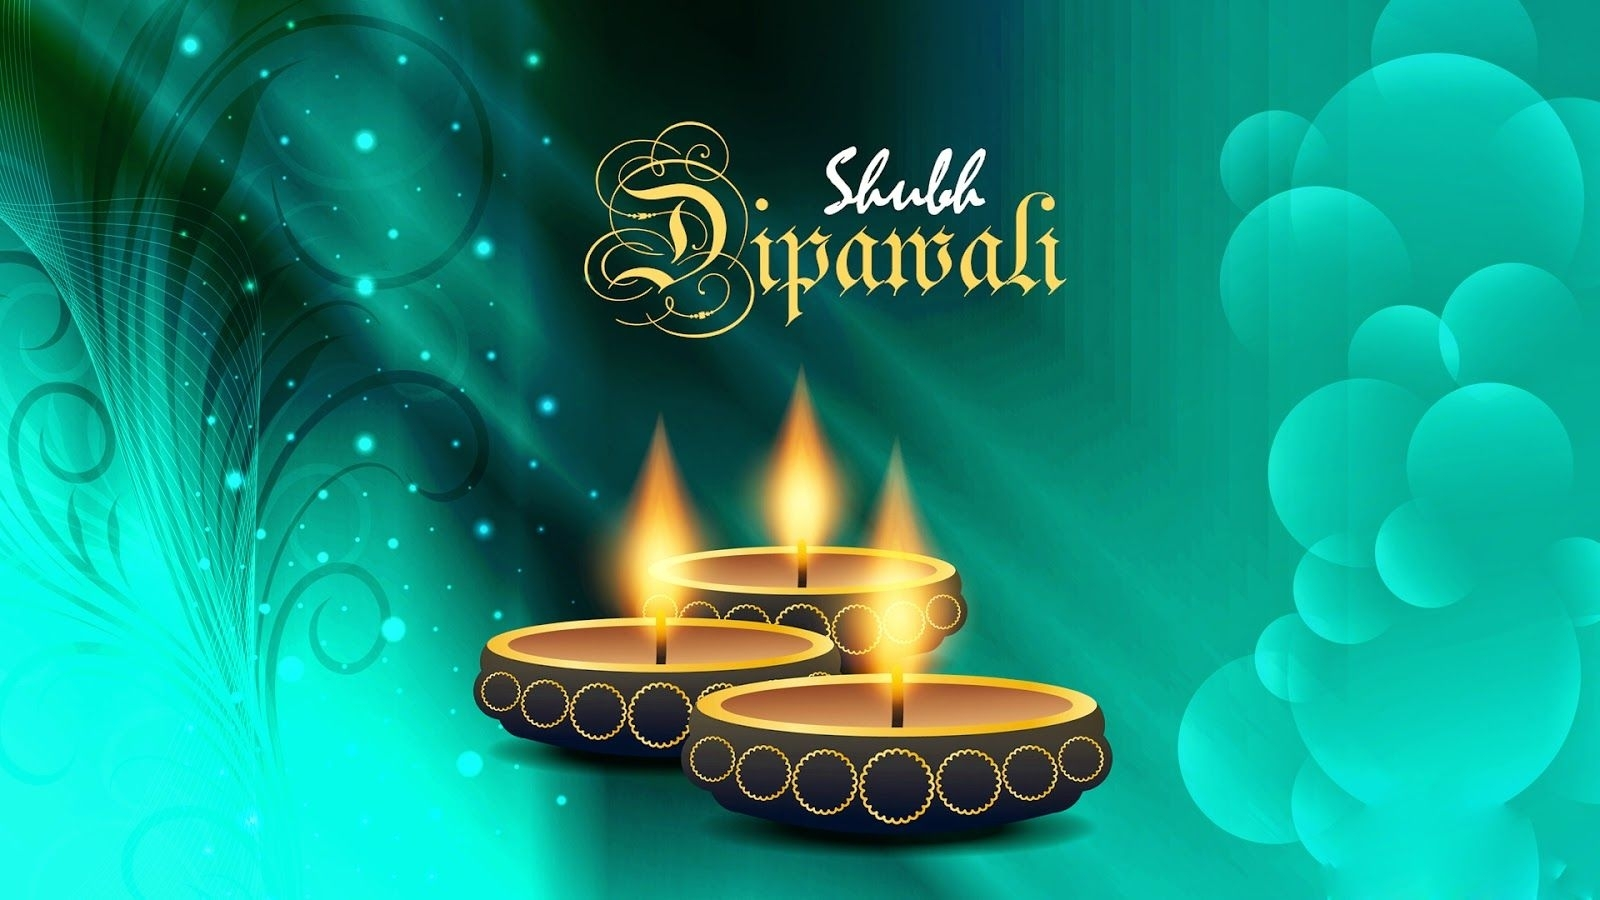 diwali wallpaper 2016: download free latest hd diwali wallpapers